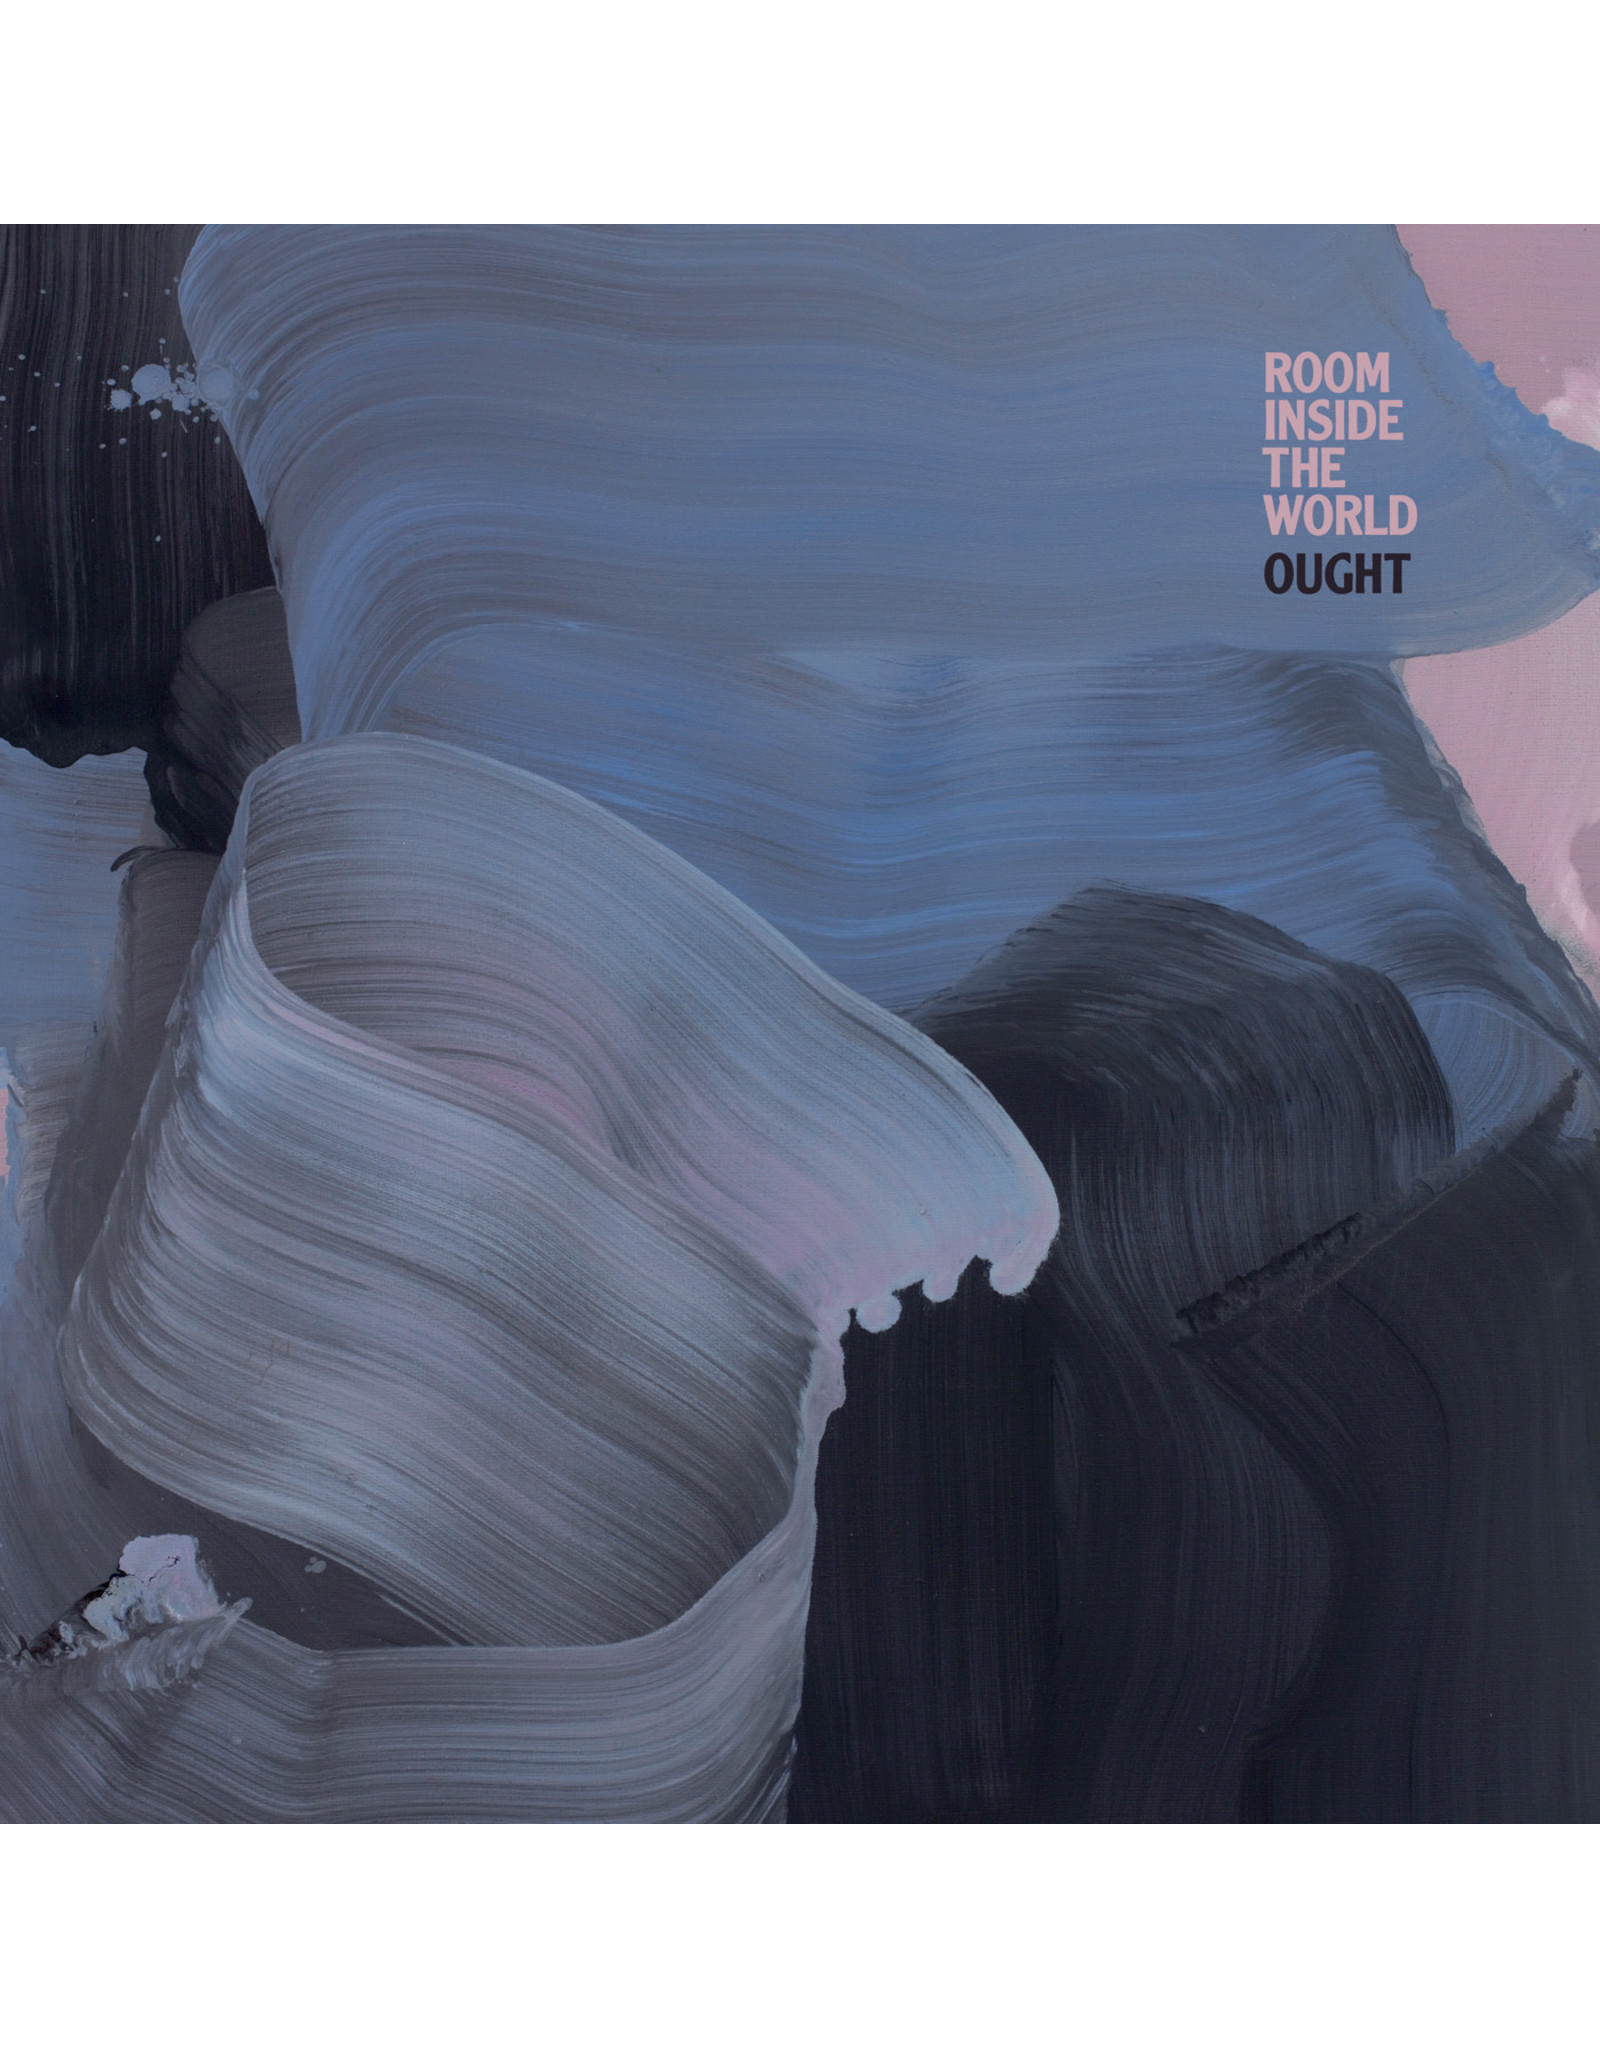 Ought - Room Inside the World LP